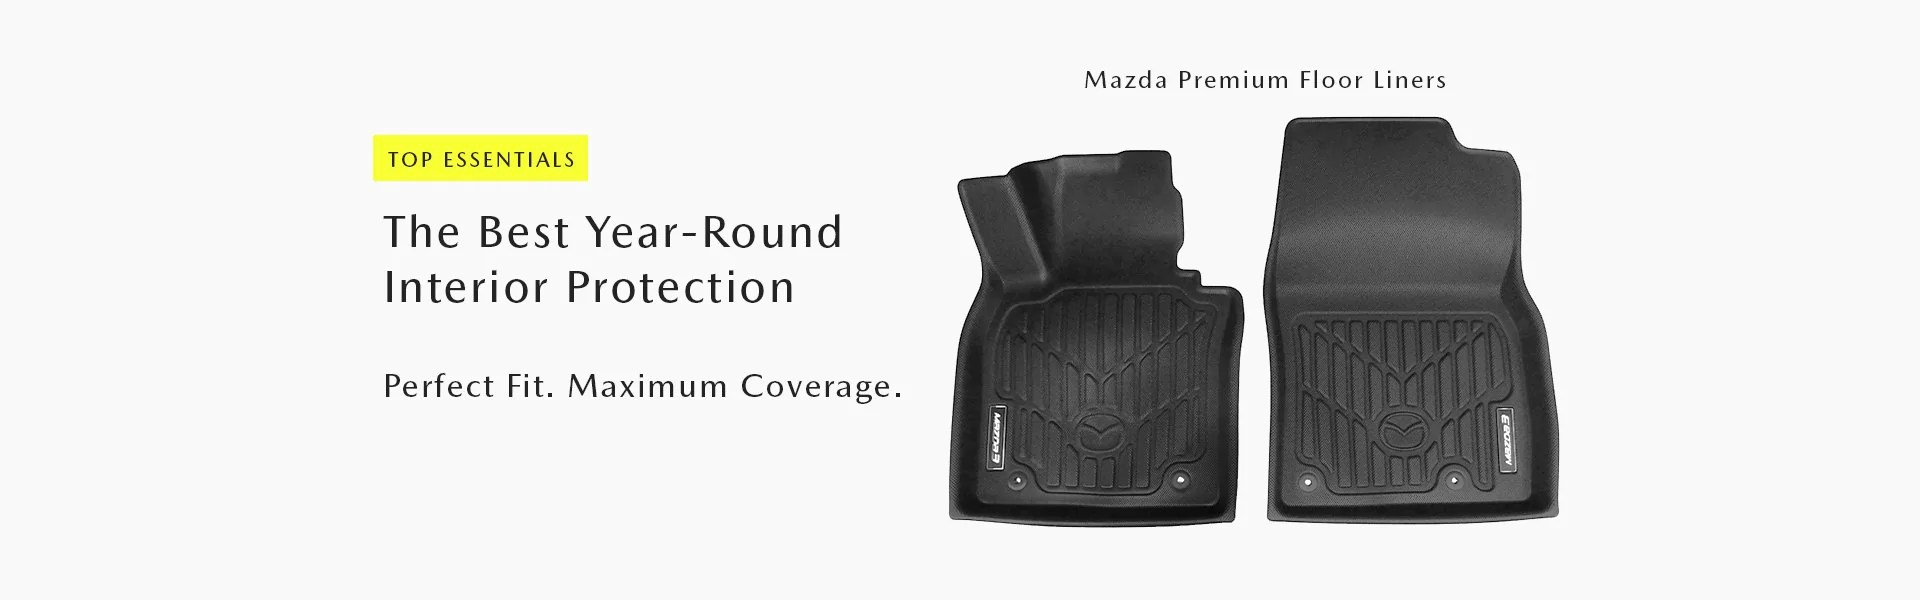 hight resolution of 2019 mazda summer clinic promotion 15 off mazda accessories